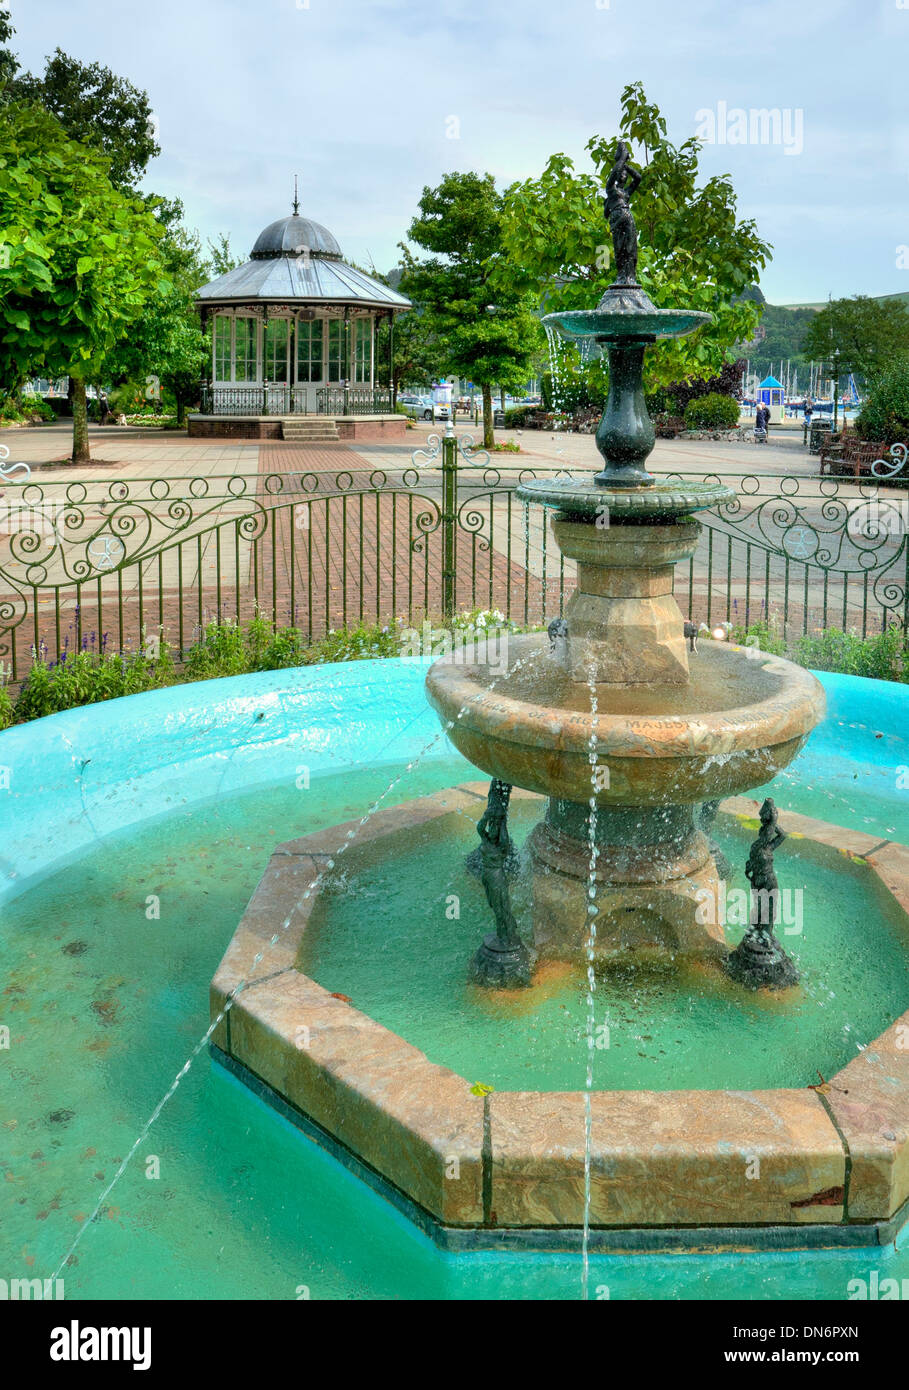 The fountain and bandstand at Dartmouth Park, Devon, England. Stock Photo